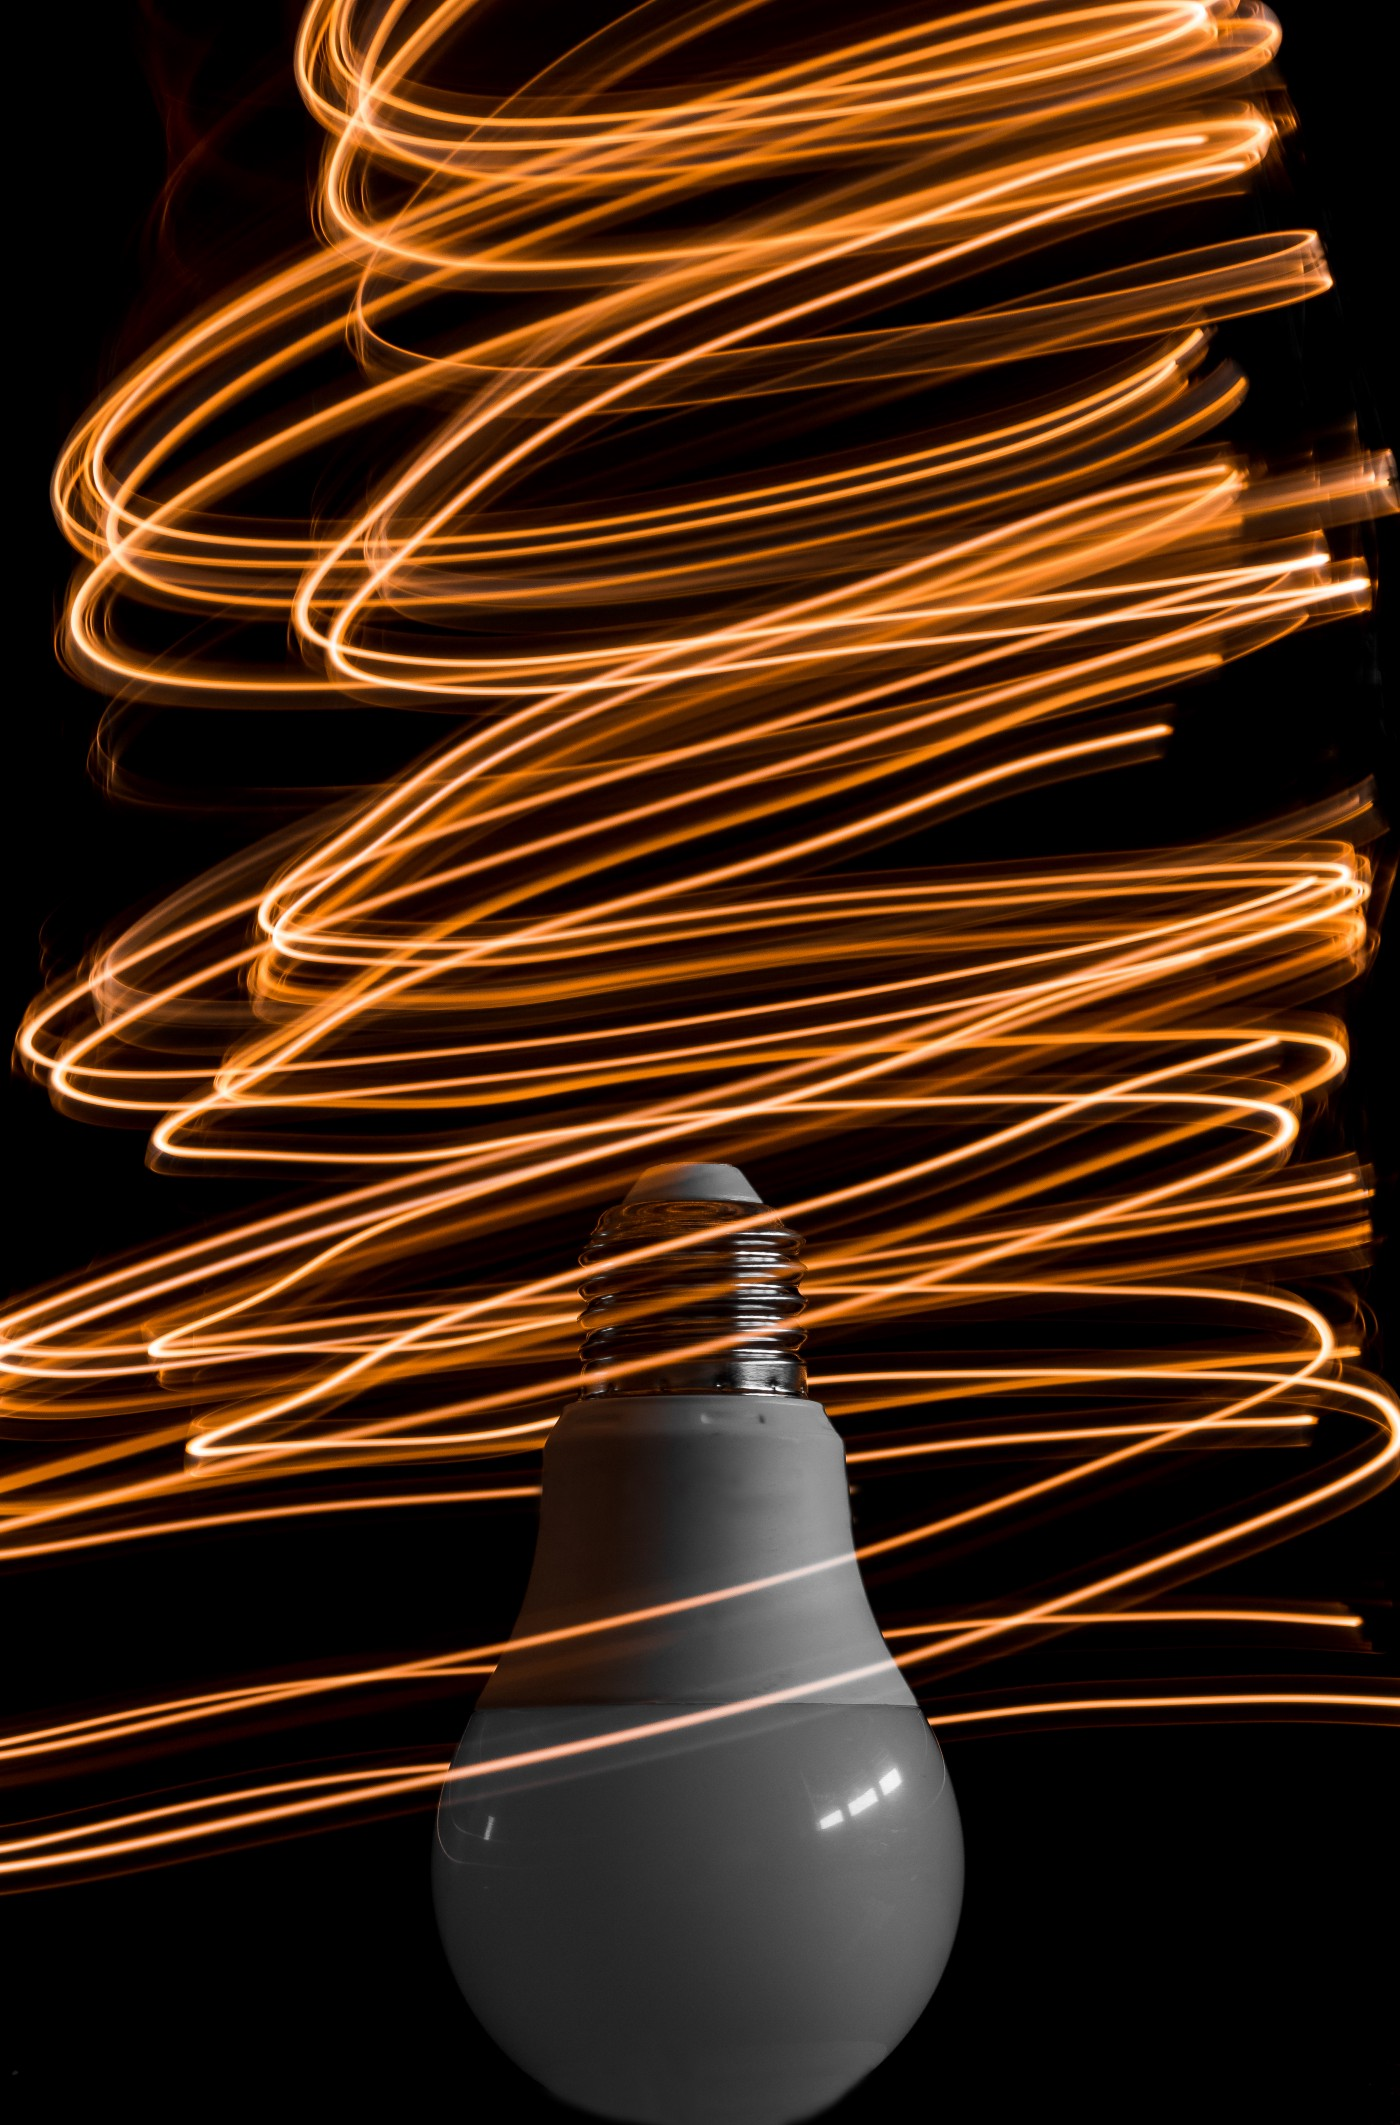 An upside down light bulb with a whirlwind of orange-yellow light surrounding it. Symbolic of ideas, innovation, and thinking outside the box. Defying the status quo.